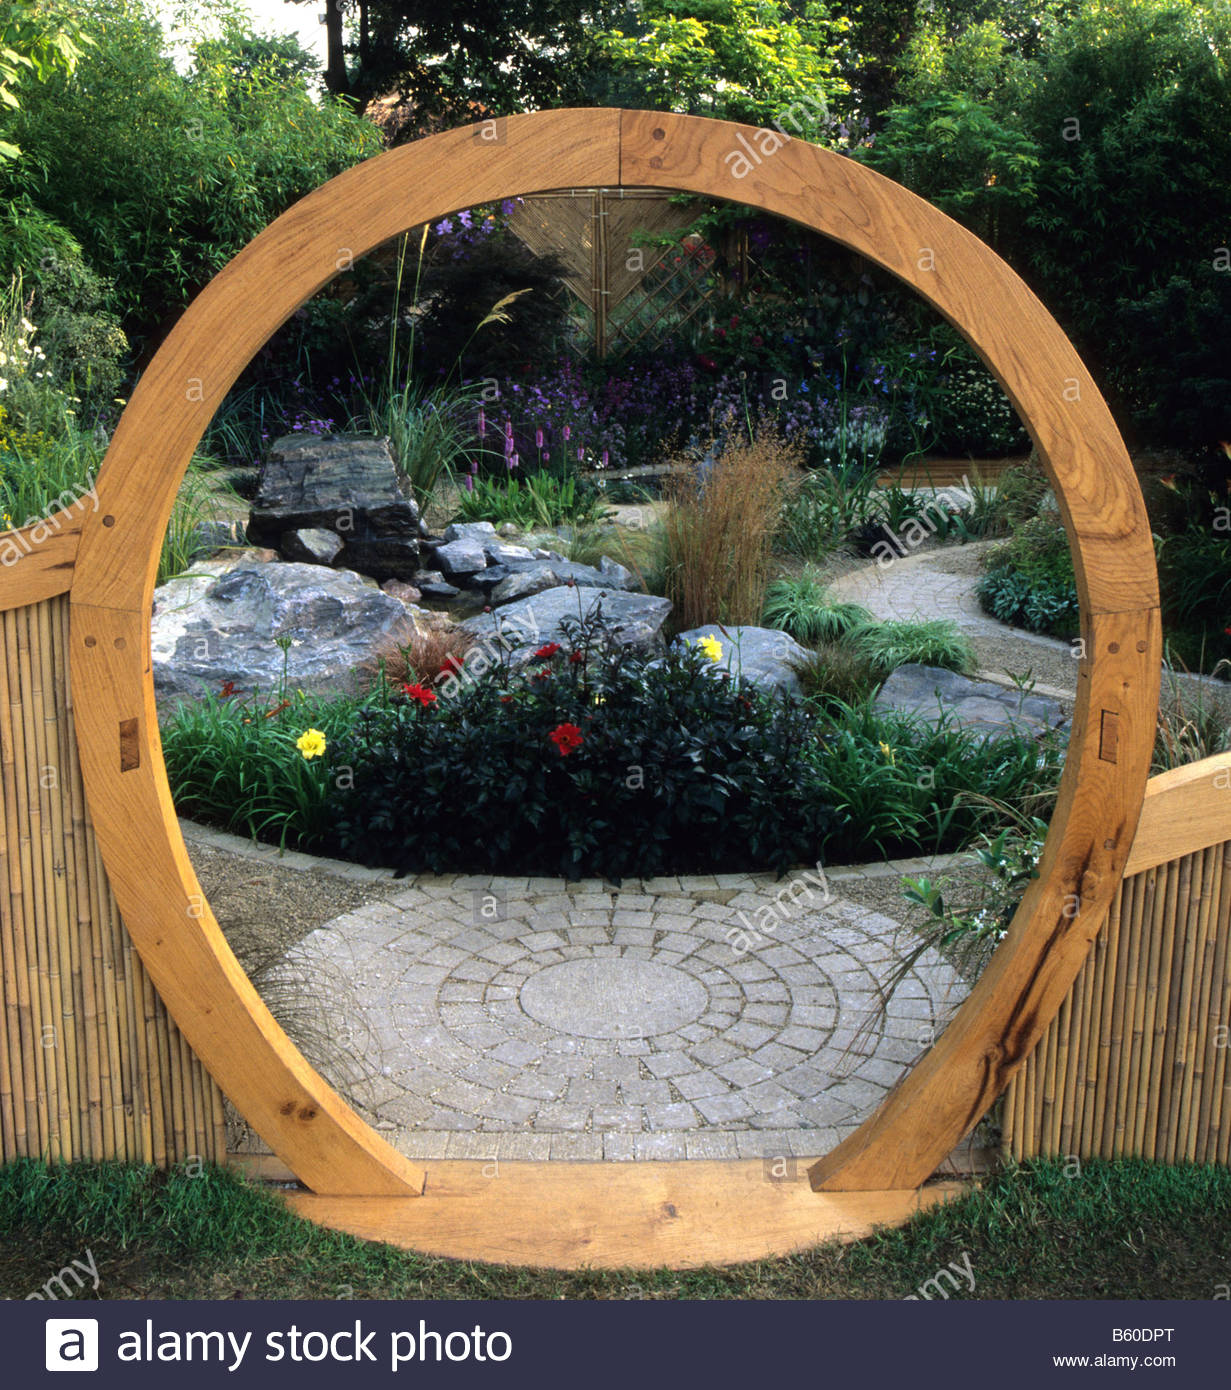 Feng shui garden london design pamela woods circular moon for Moon garden designs